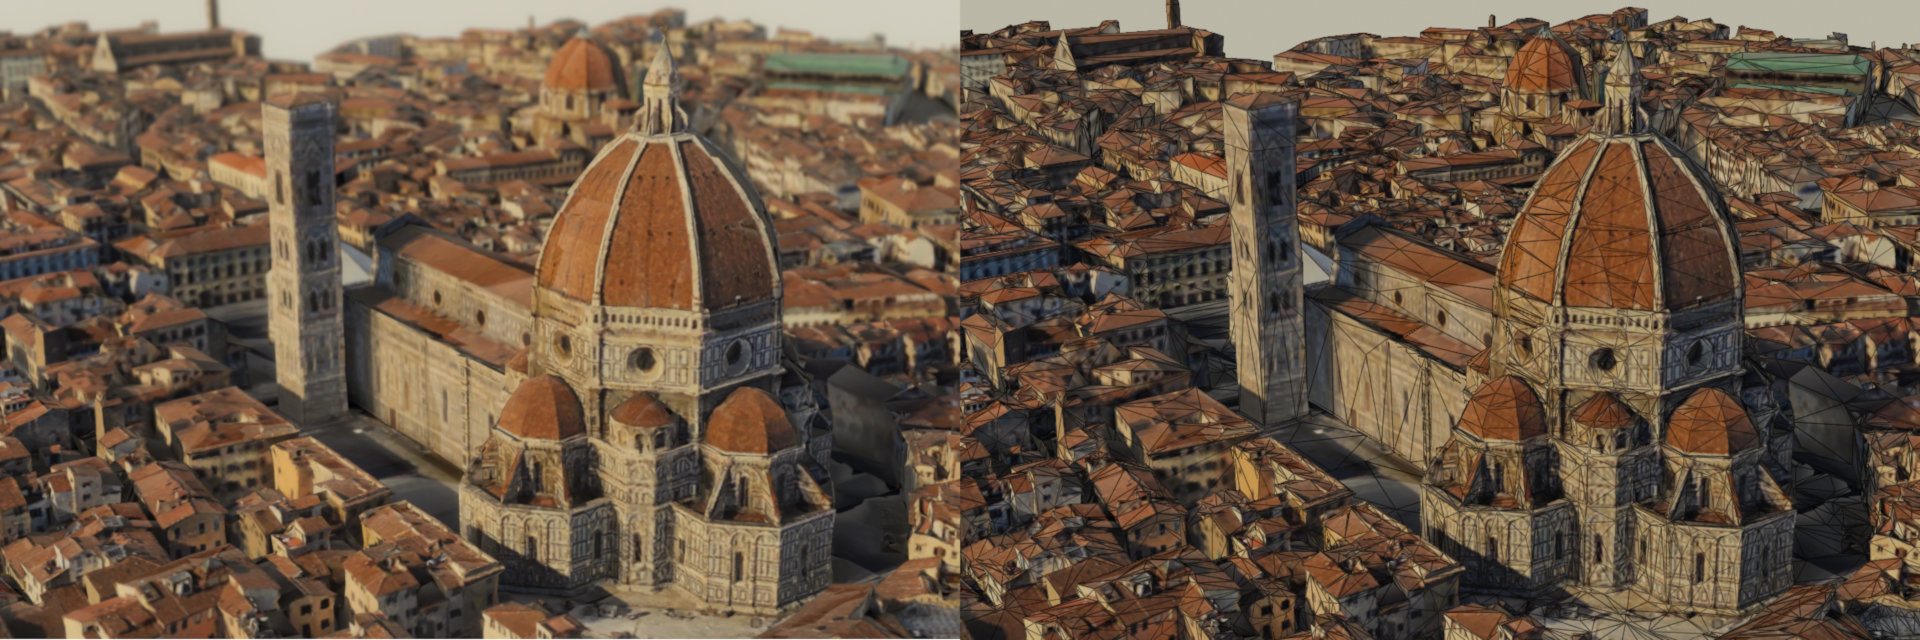 San Maria del Fiore imported from Google Maps